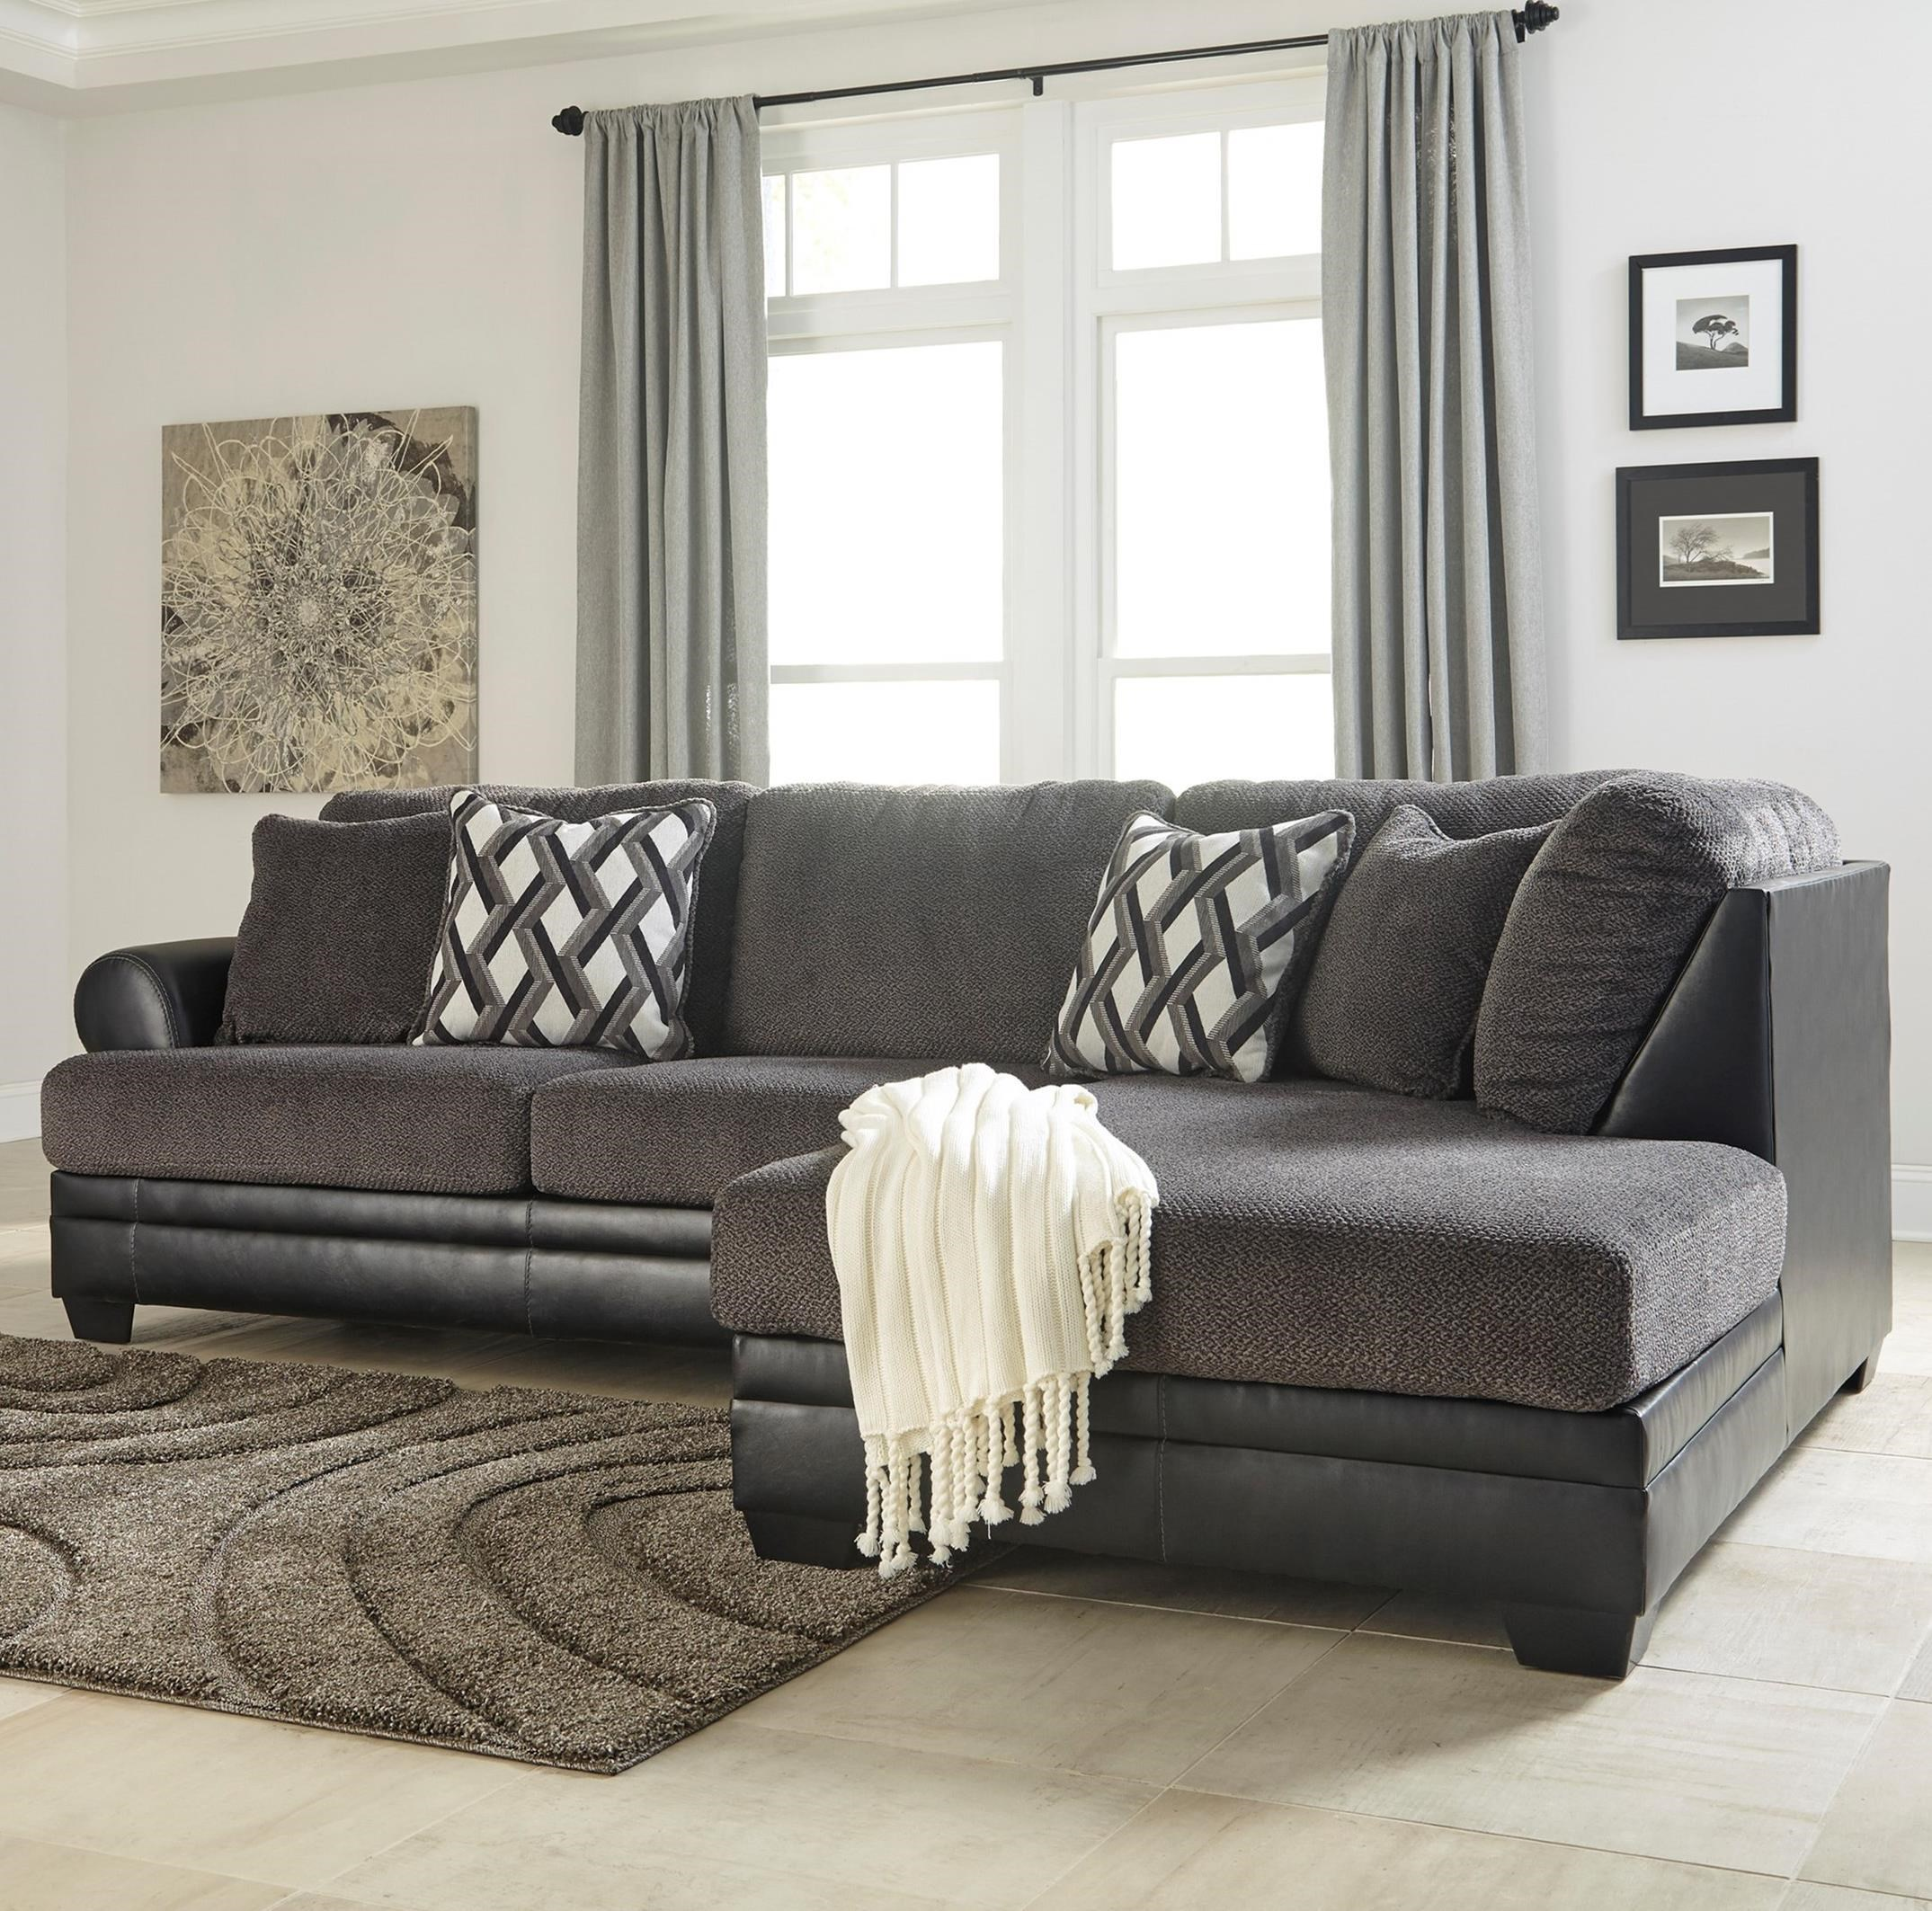 Kumasi 2-Piece Sectional with Right Chaise by Benchcraft at Walker's Furniture